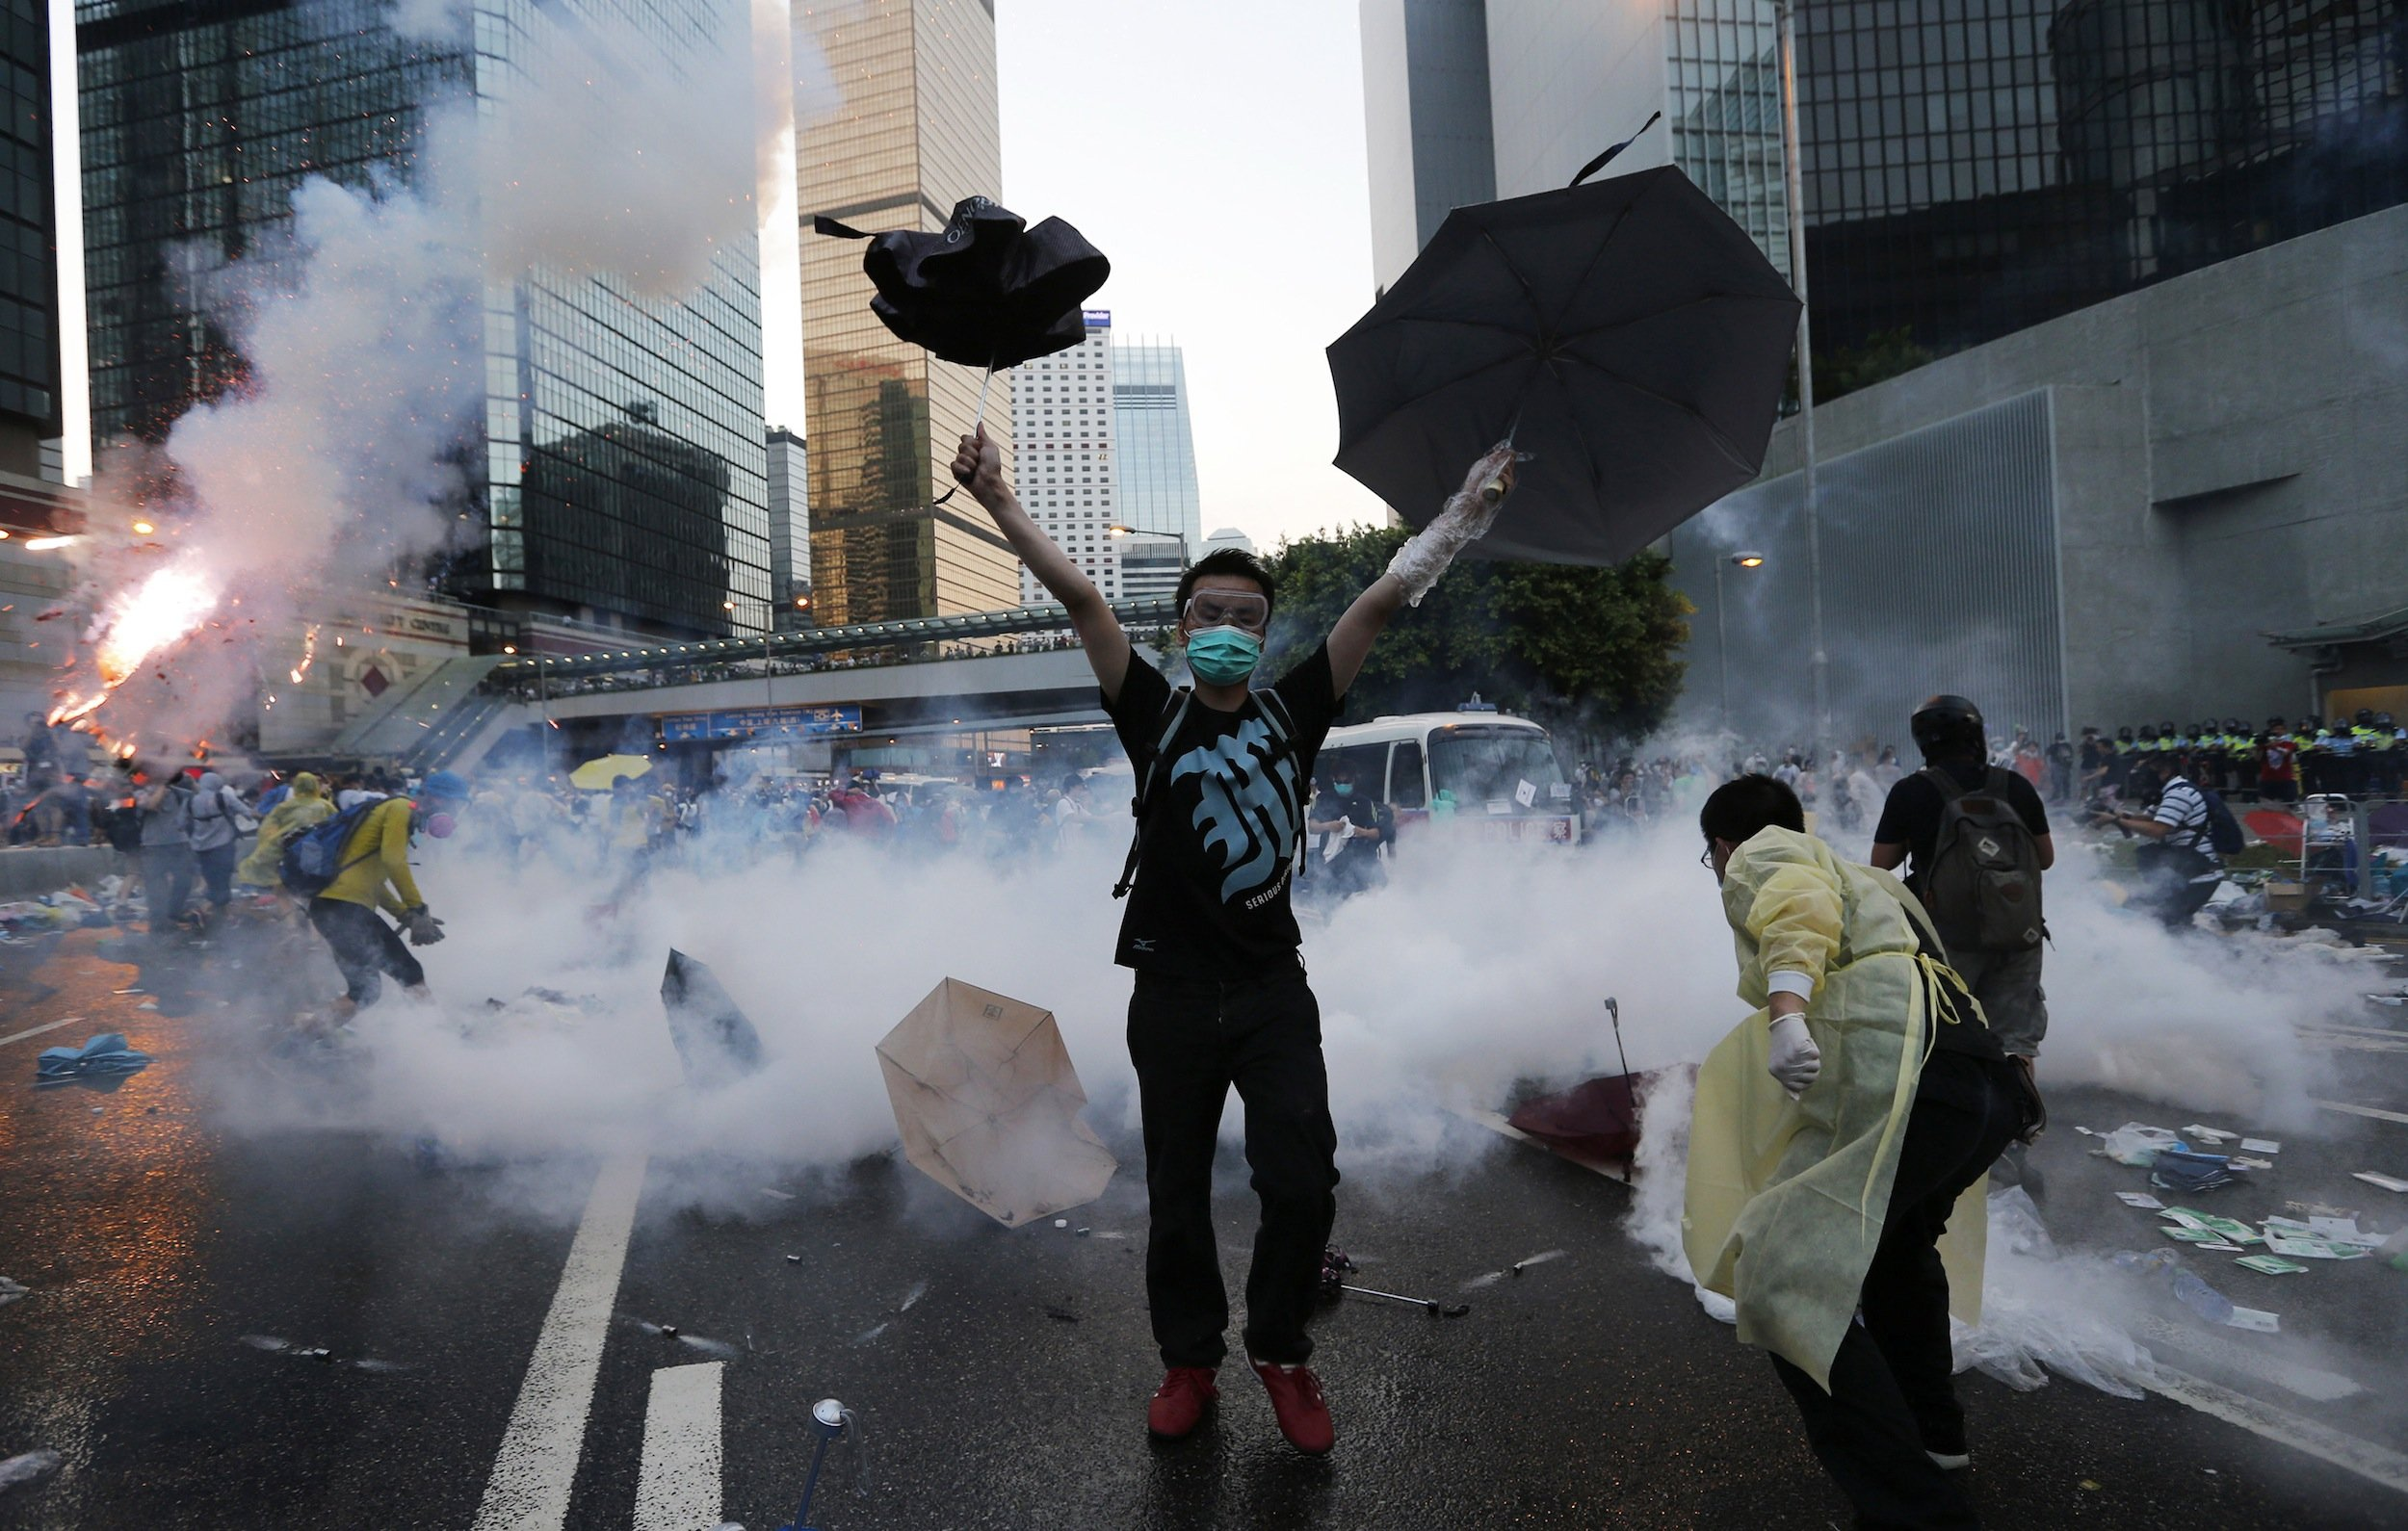 HK police use clubs, rubber bullets and tear gas to disperse demonstrators